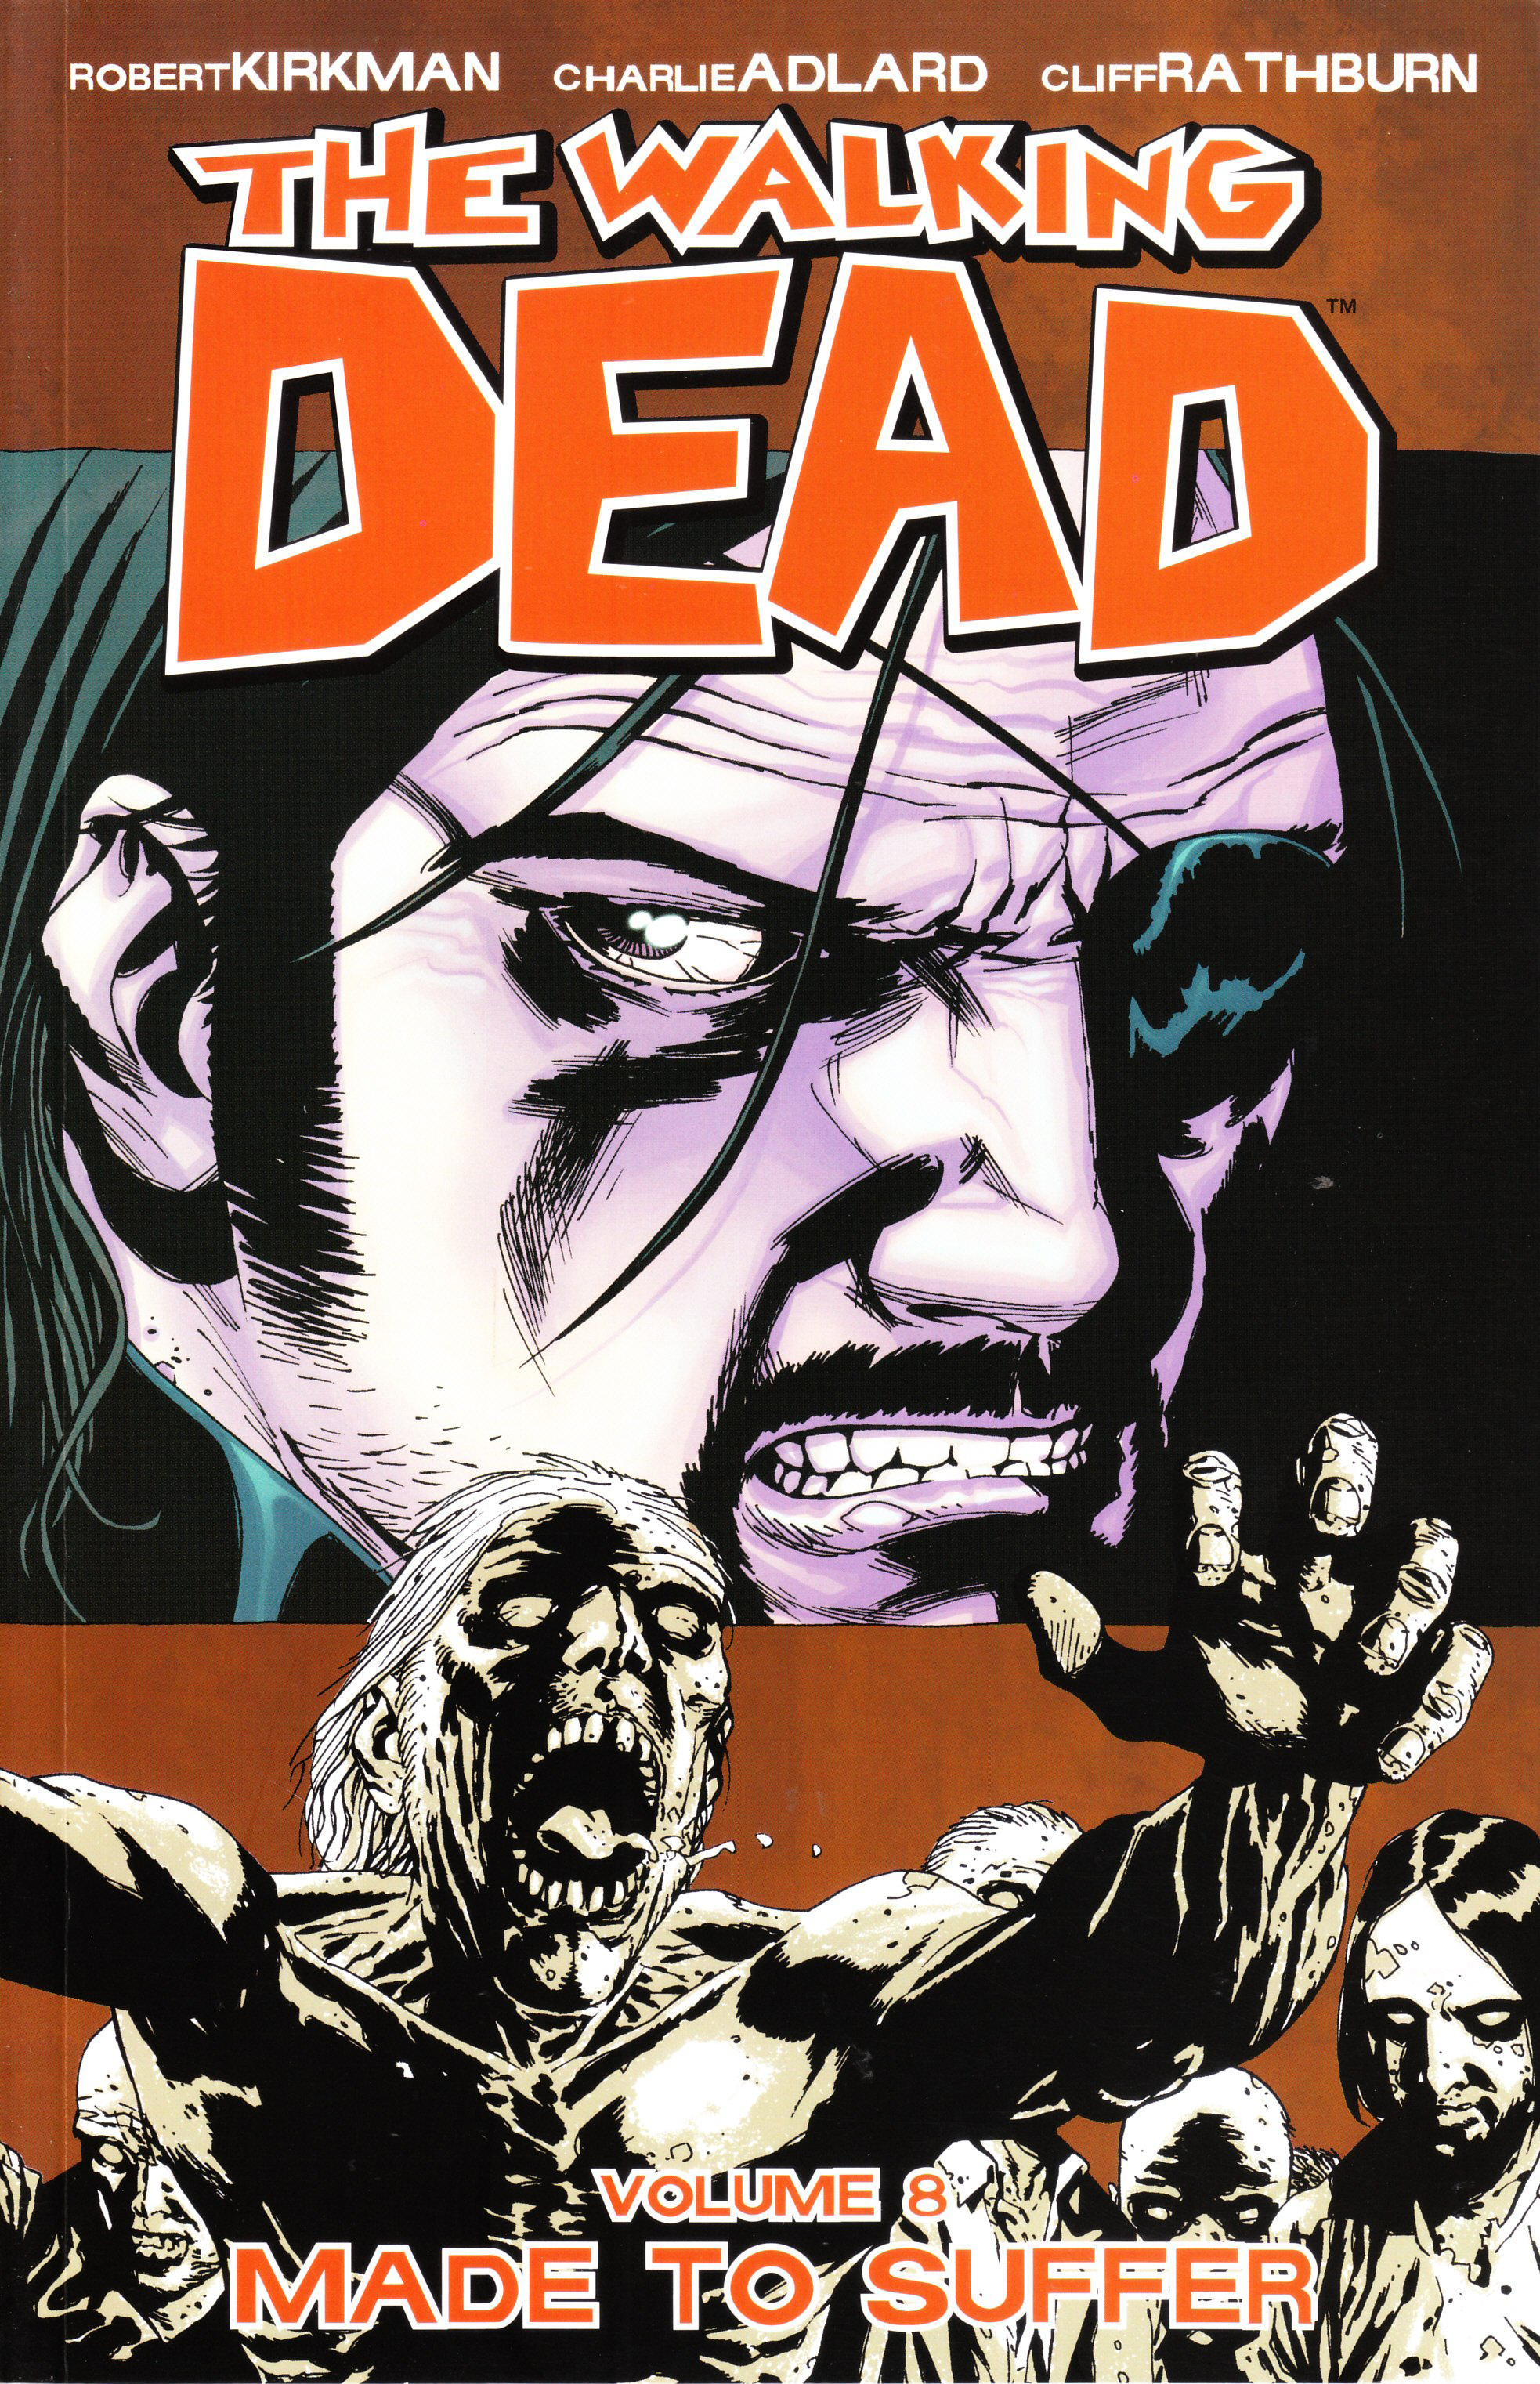 (USE APR178857) WALKING DEAD TP VOL 08 MADE TO SUFFER (MR)